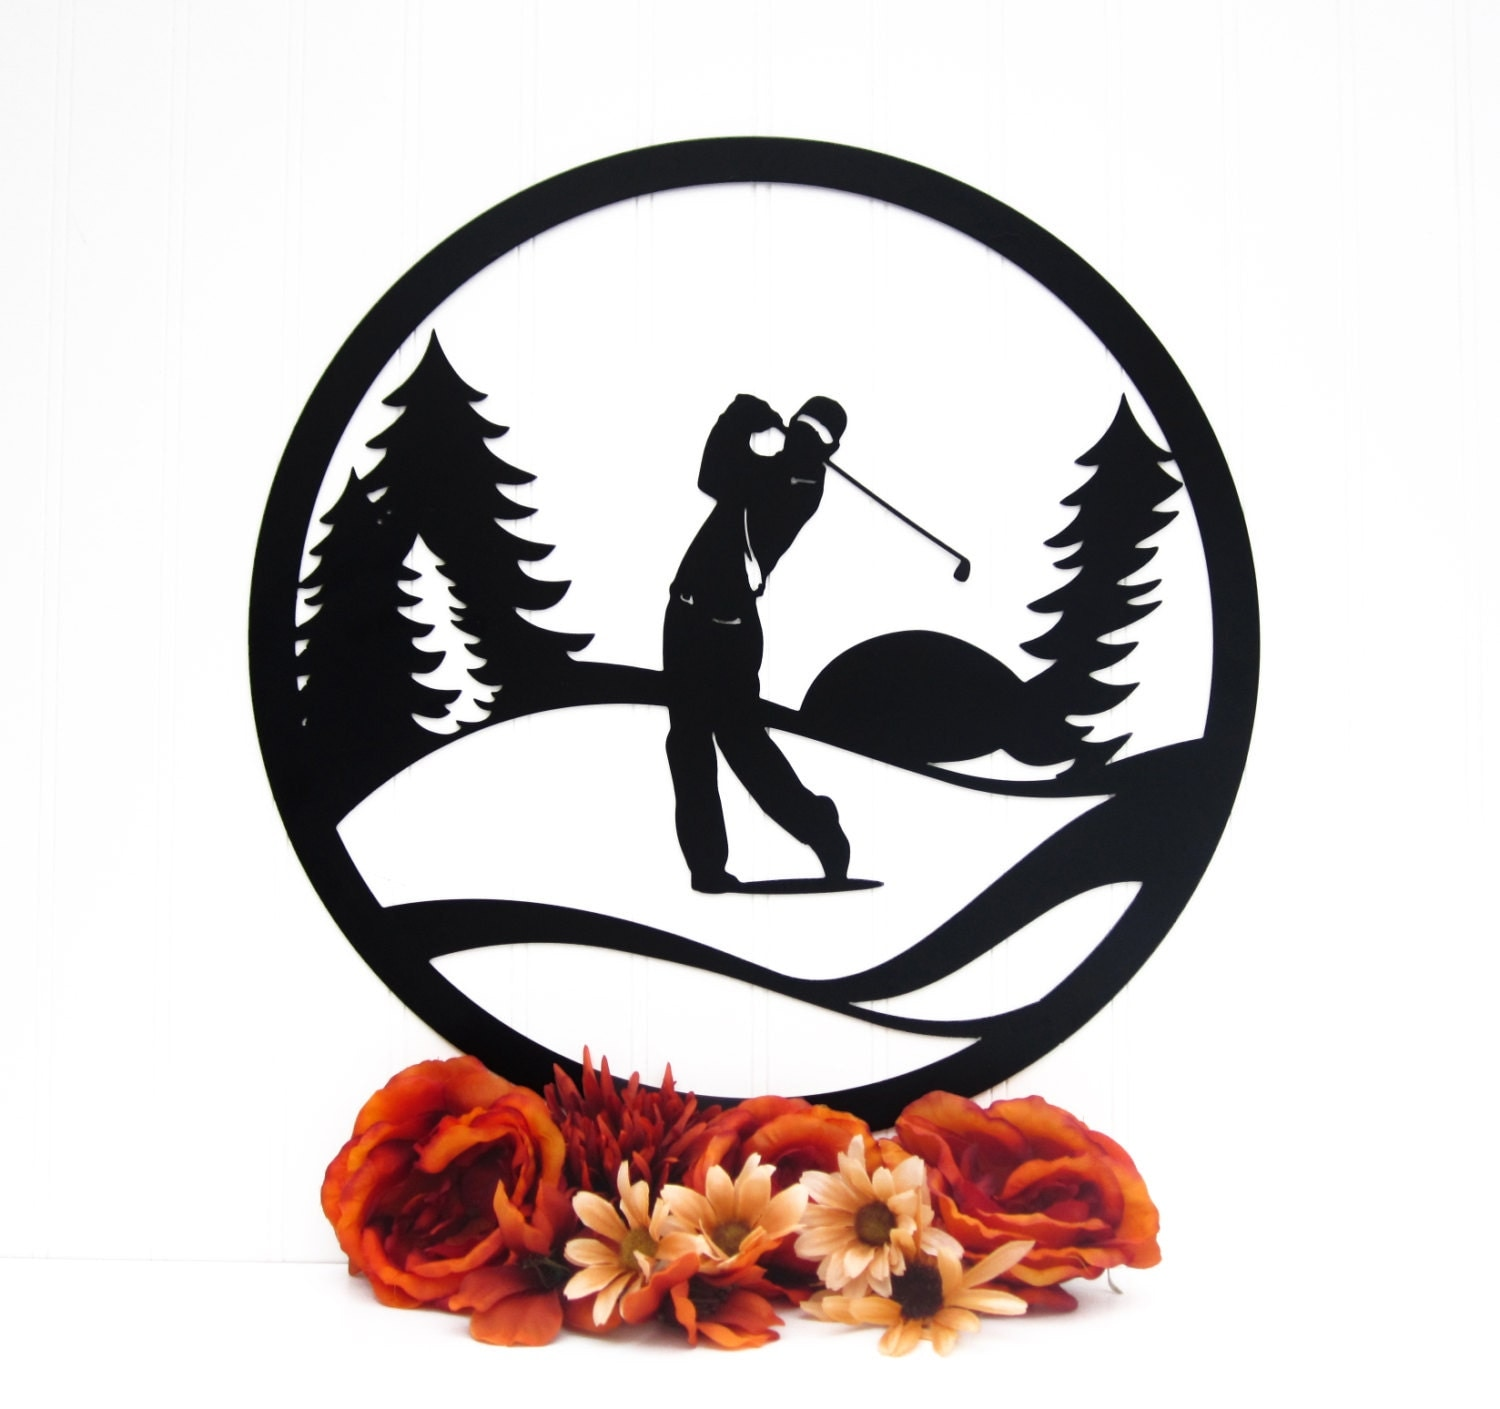 Metal Golf Wall Decor : Golfer golf course metal wall art gifts for him